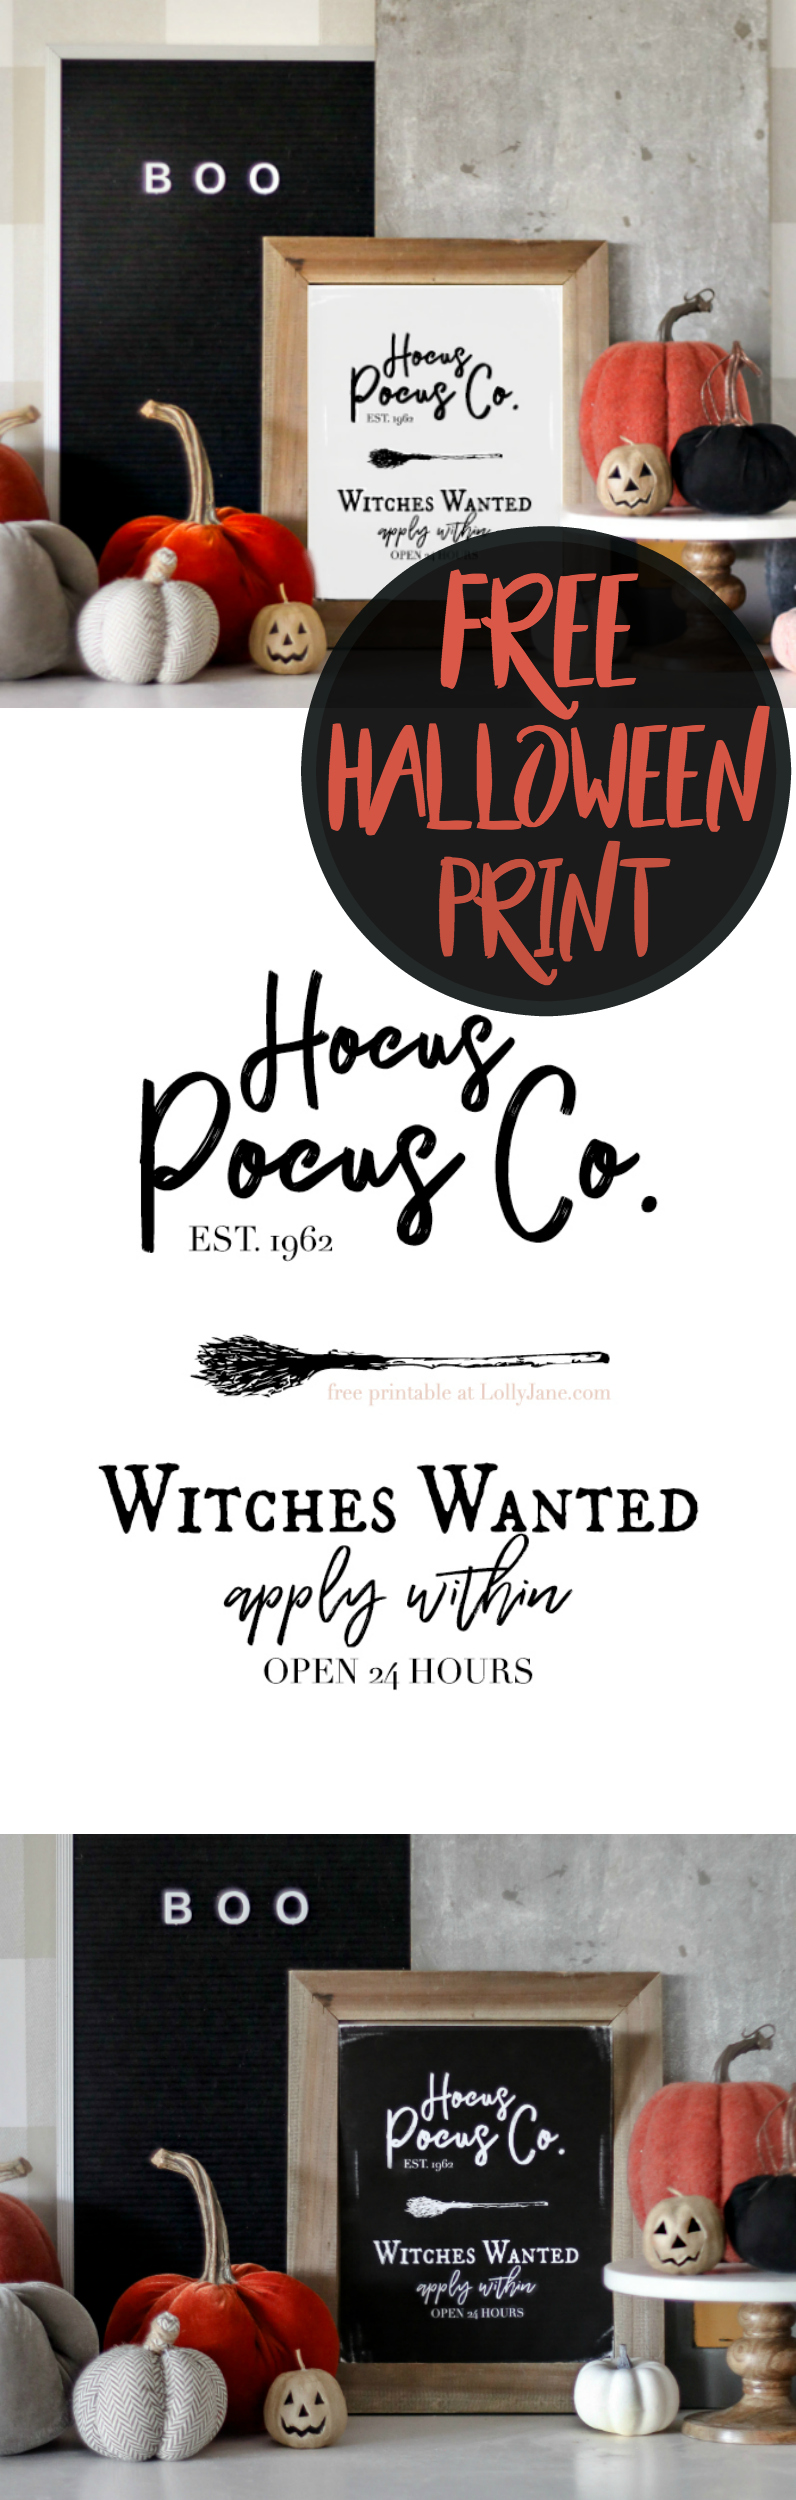 "Free Printable Halloween Art! So cute, simply print + display this ""Hocus Pocus"" print to instantly spruce up your space!"